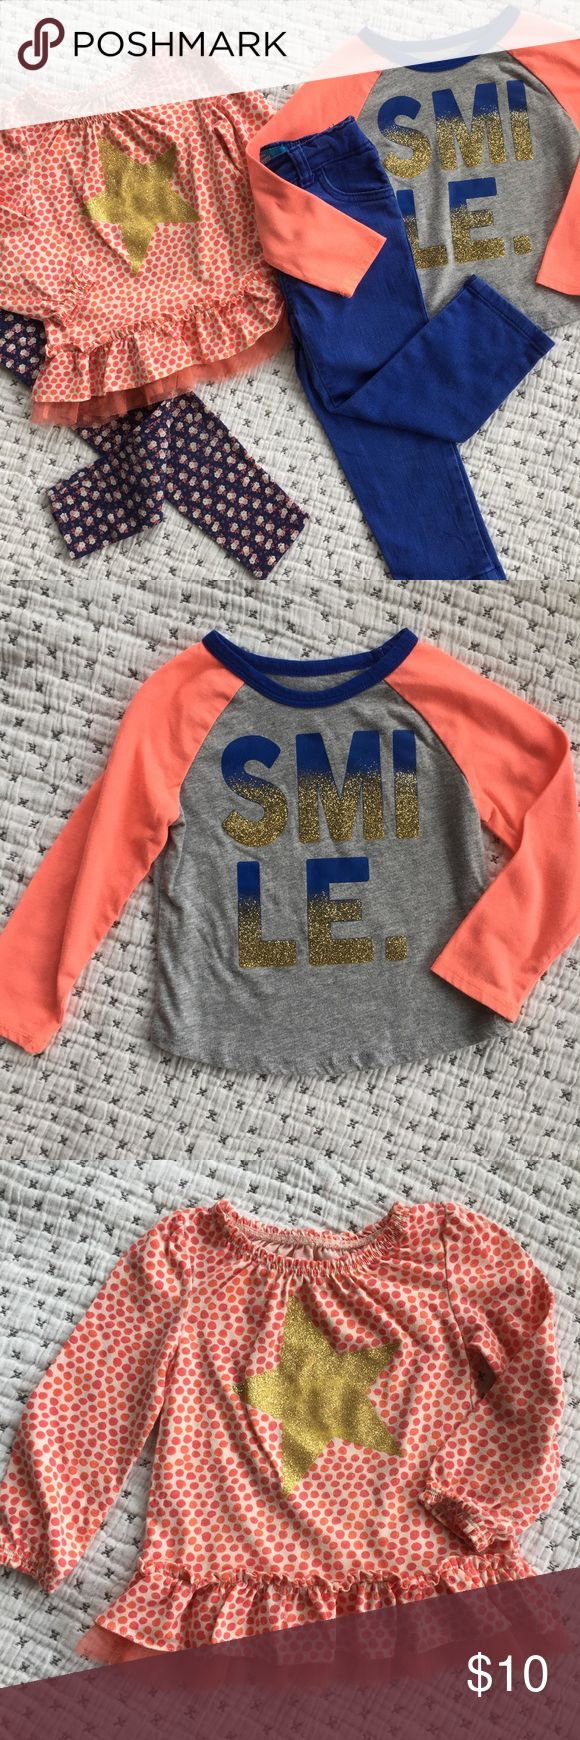 ✨Sparkly Play Bundle 2T✨ Bundle includes Gap 2T floral leggings, Old Navy  2T blue skinny jeans with adjustable waistband, Cherokee 2T orange star top, and Okie Dokie 24M Smile top. Items well loved with wash wear, some piling and some minor spots. Cute stuff, great for play. GAP Bottoms